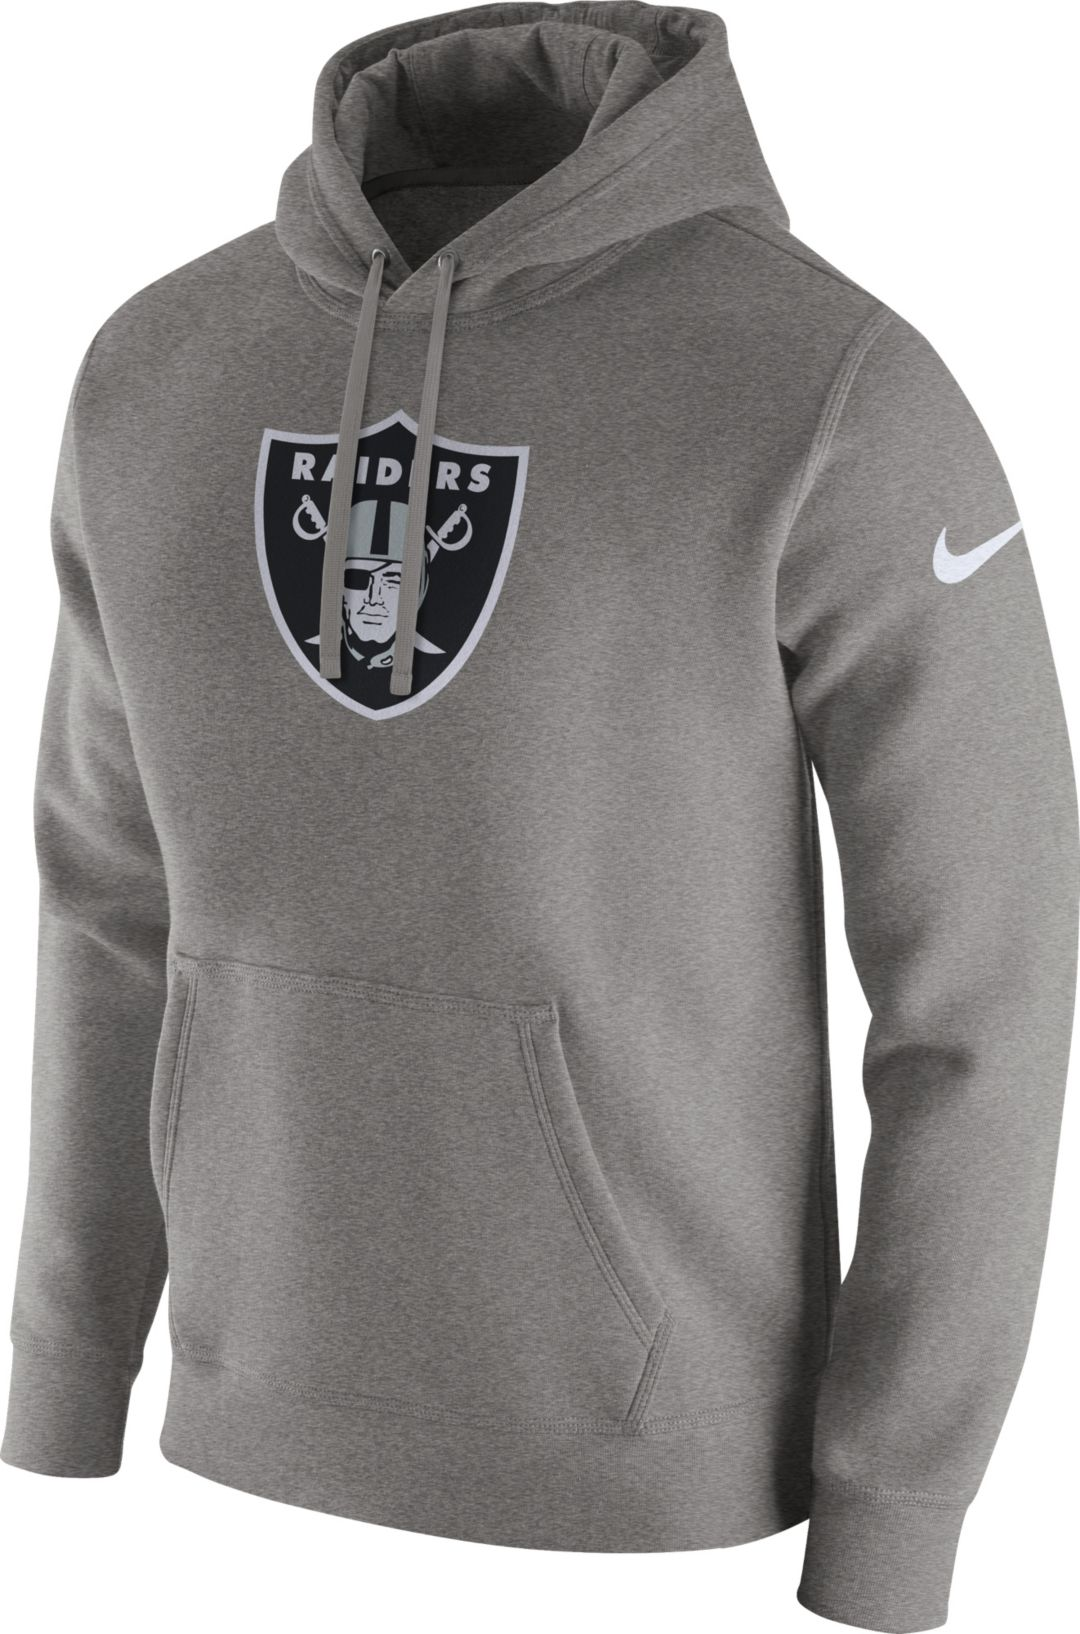 buy popular bcd3b d5a55 Nike Men's Oakland Raiders Logo Club Grey Hoodie